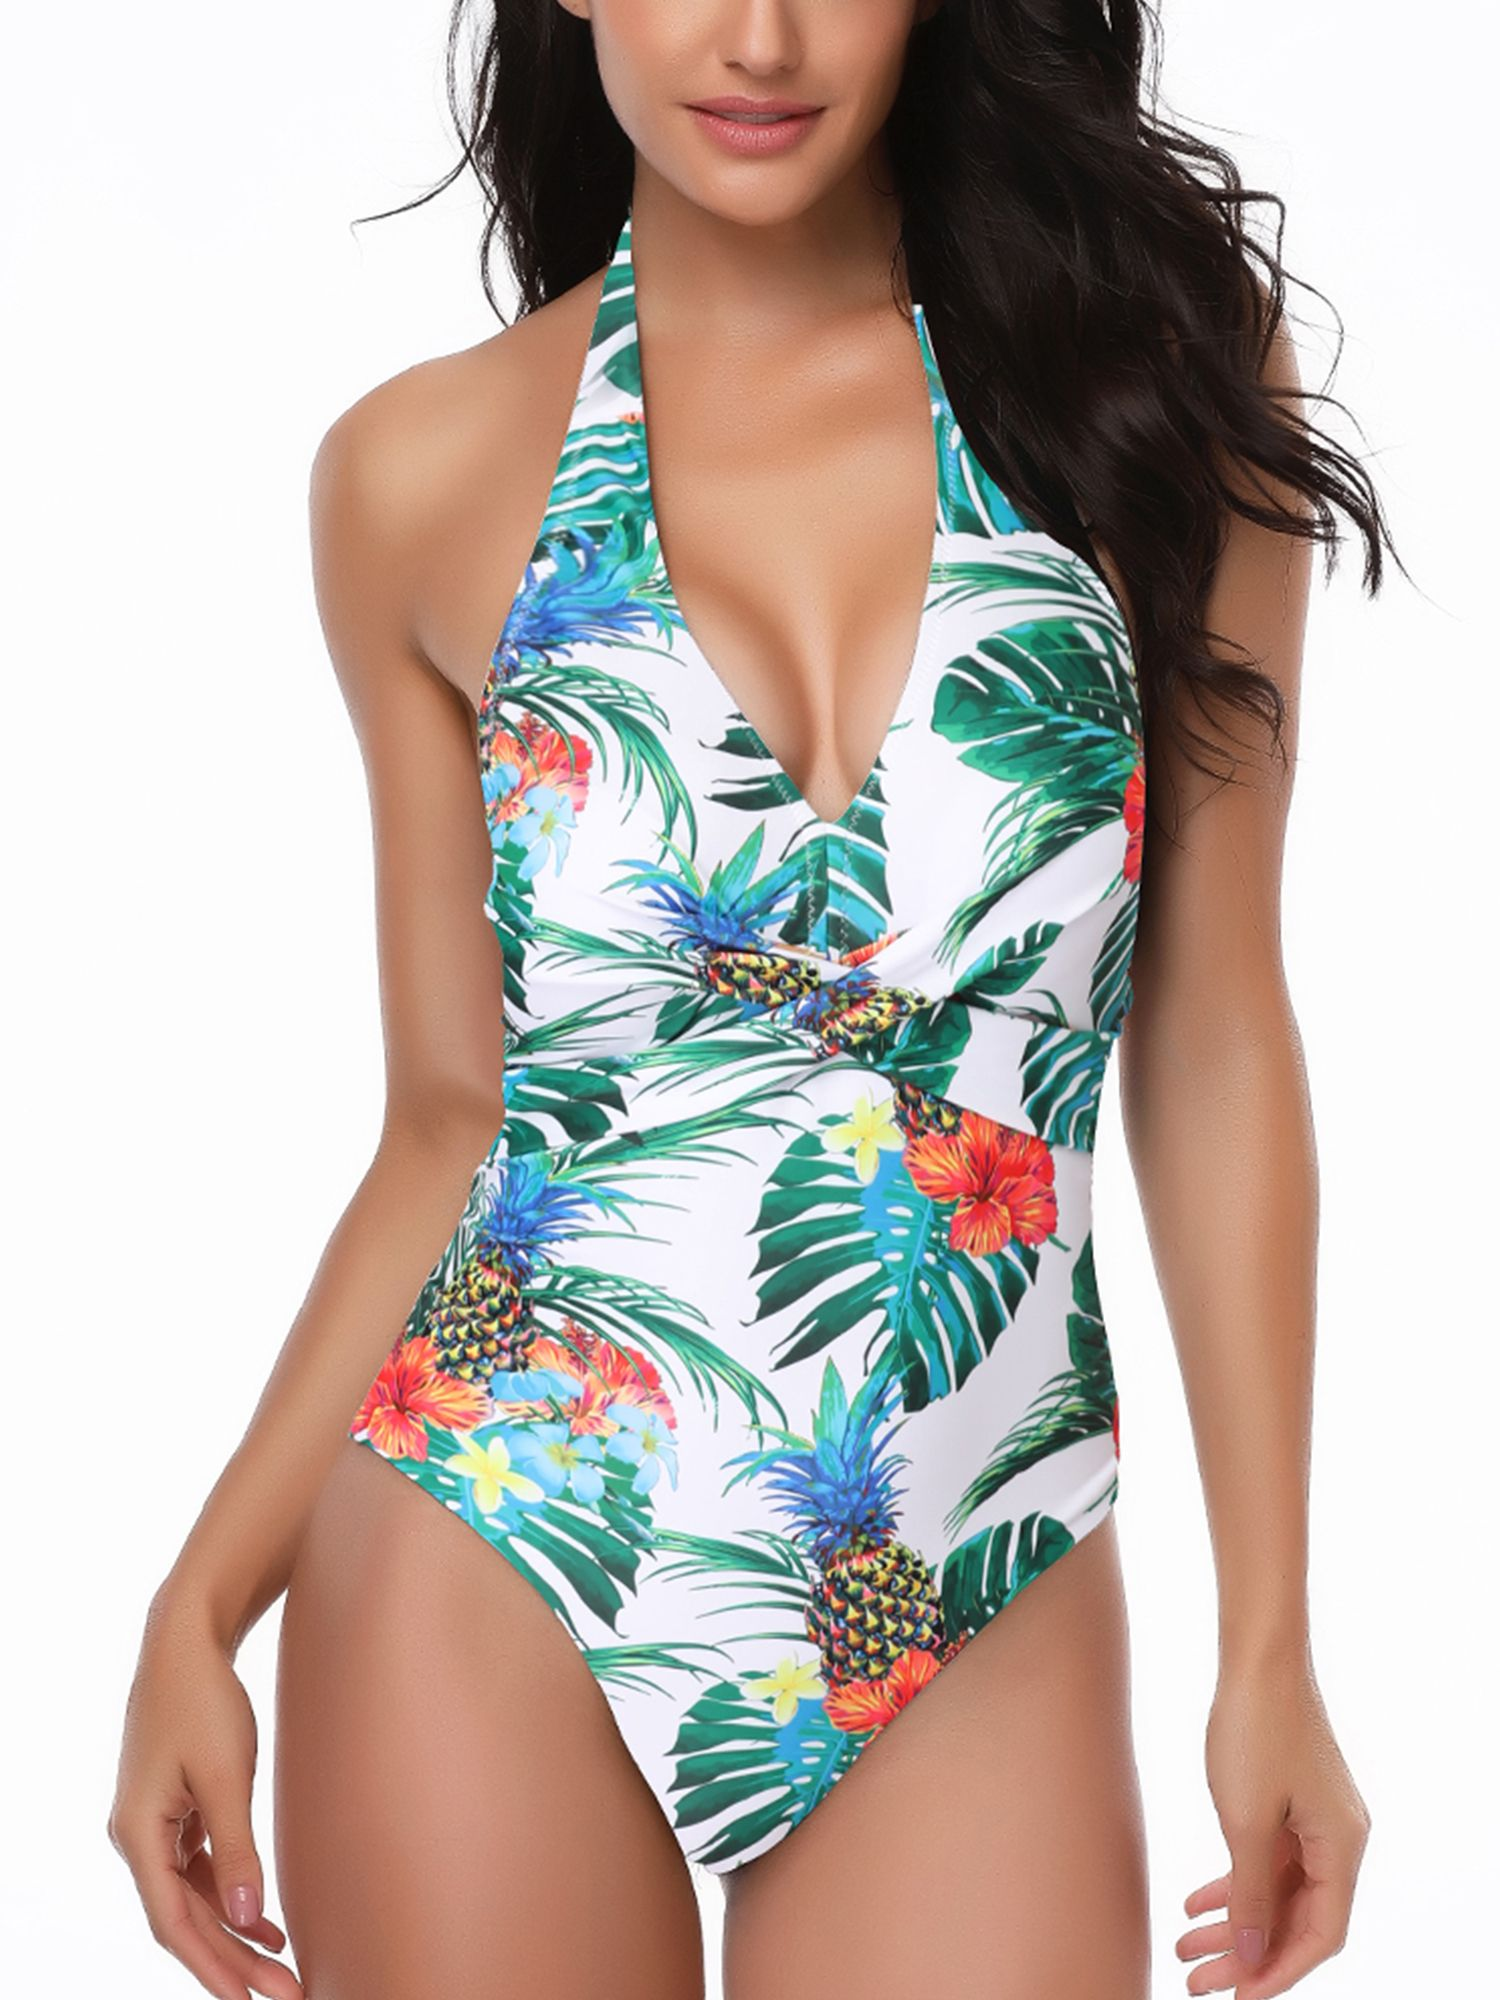 570292735bb 17 Best Swimsuits for Big Busts 2019 - Supportive Swimwear Brands